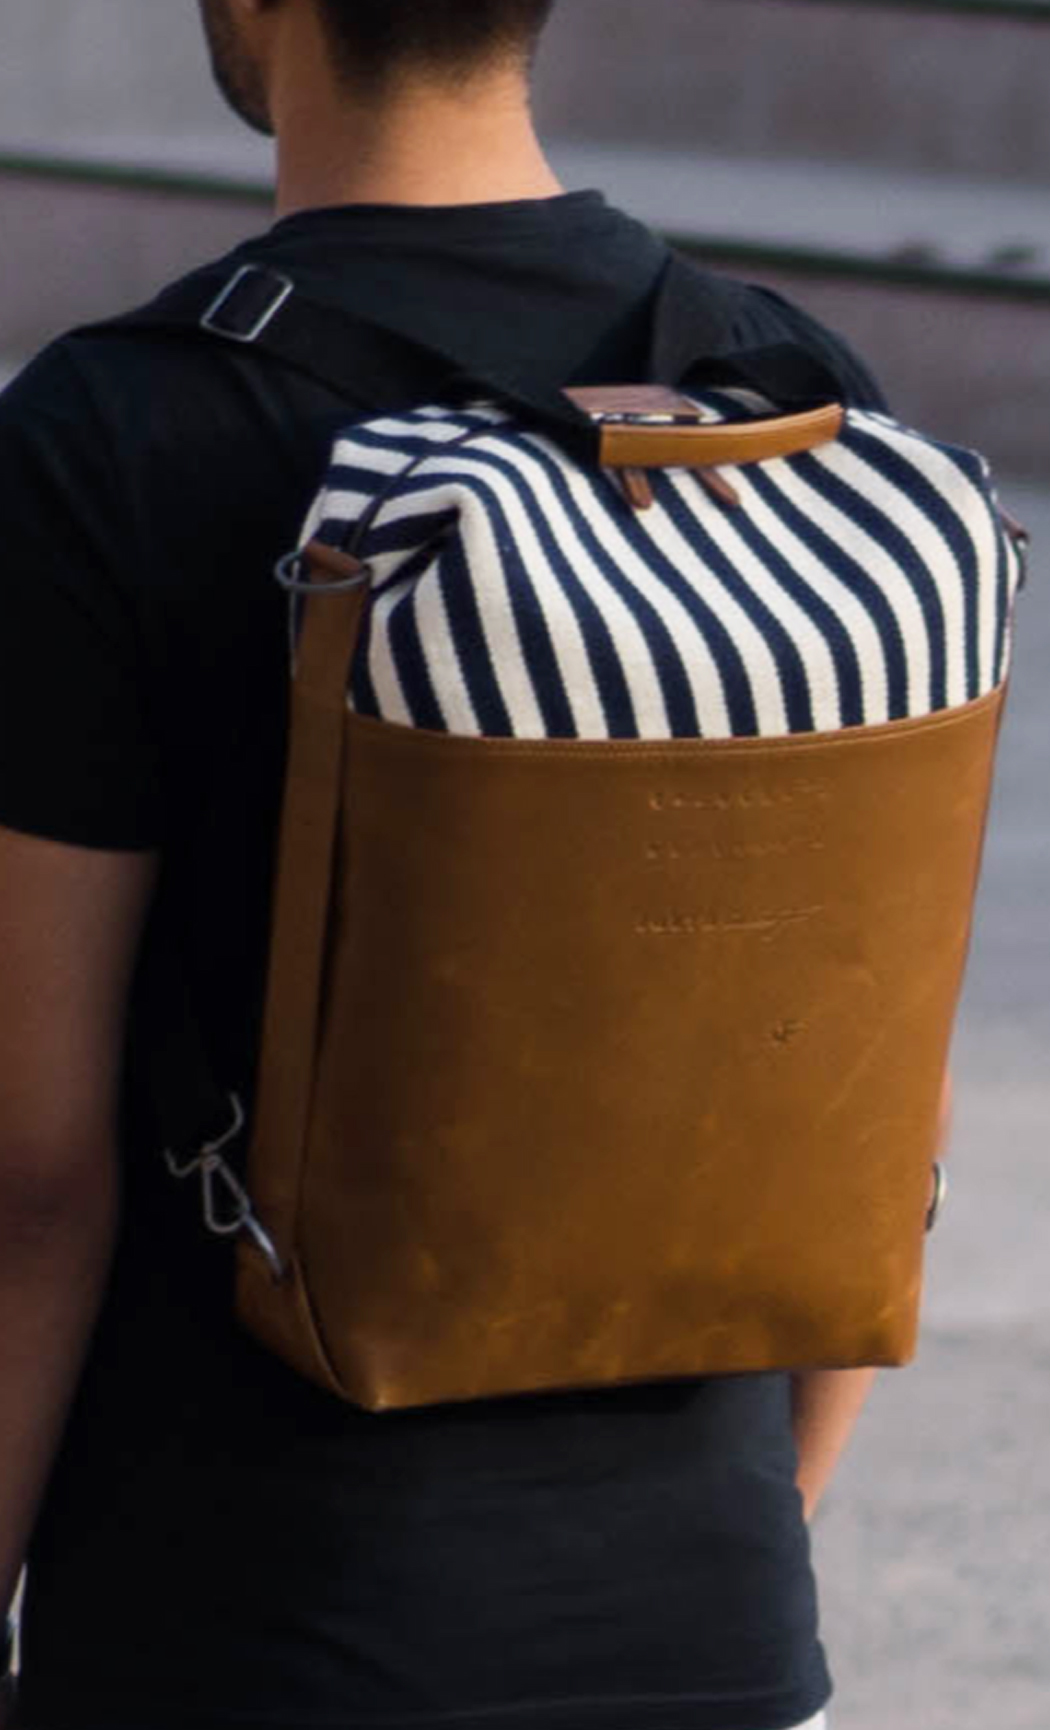 Blue and White Stripes Brown Leather Laptop Convertible Backpack - Buy Online